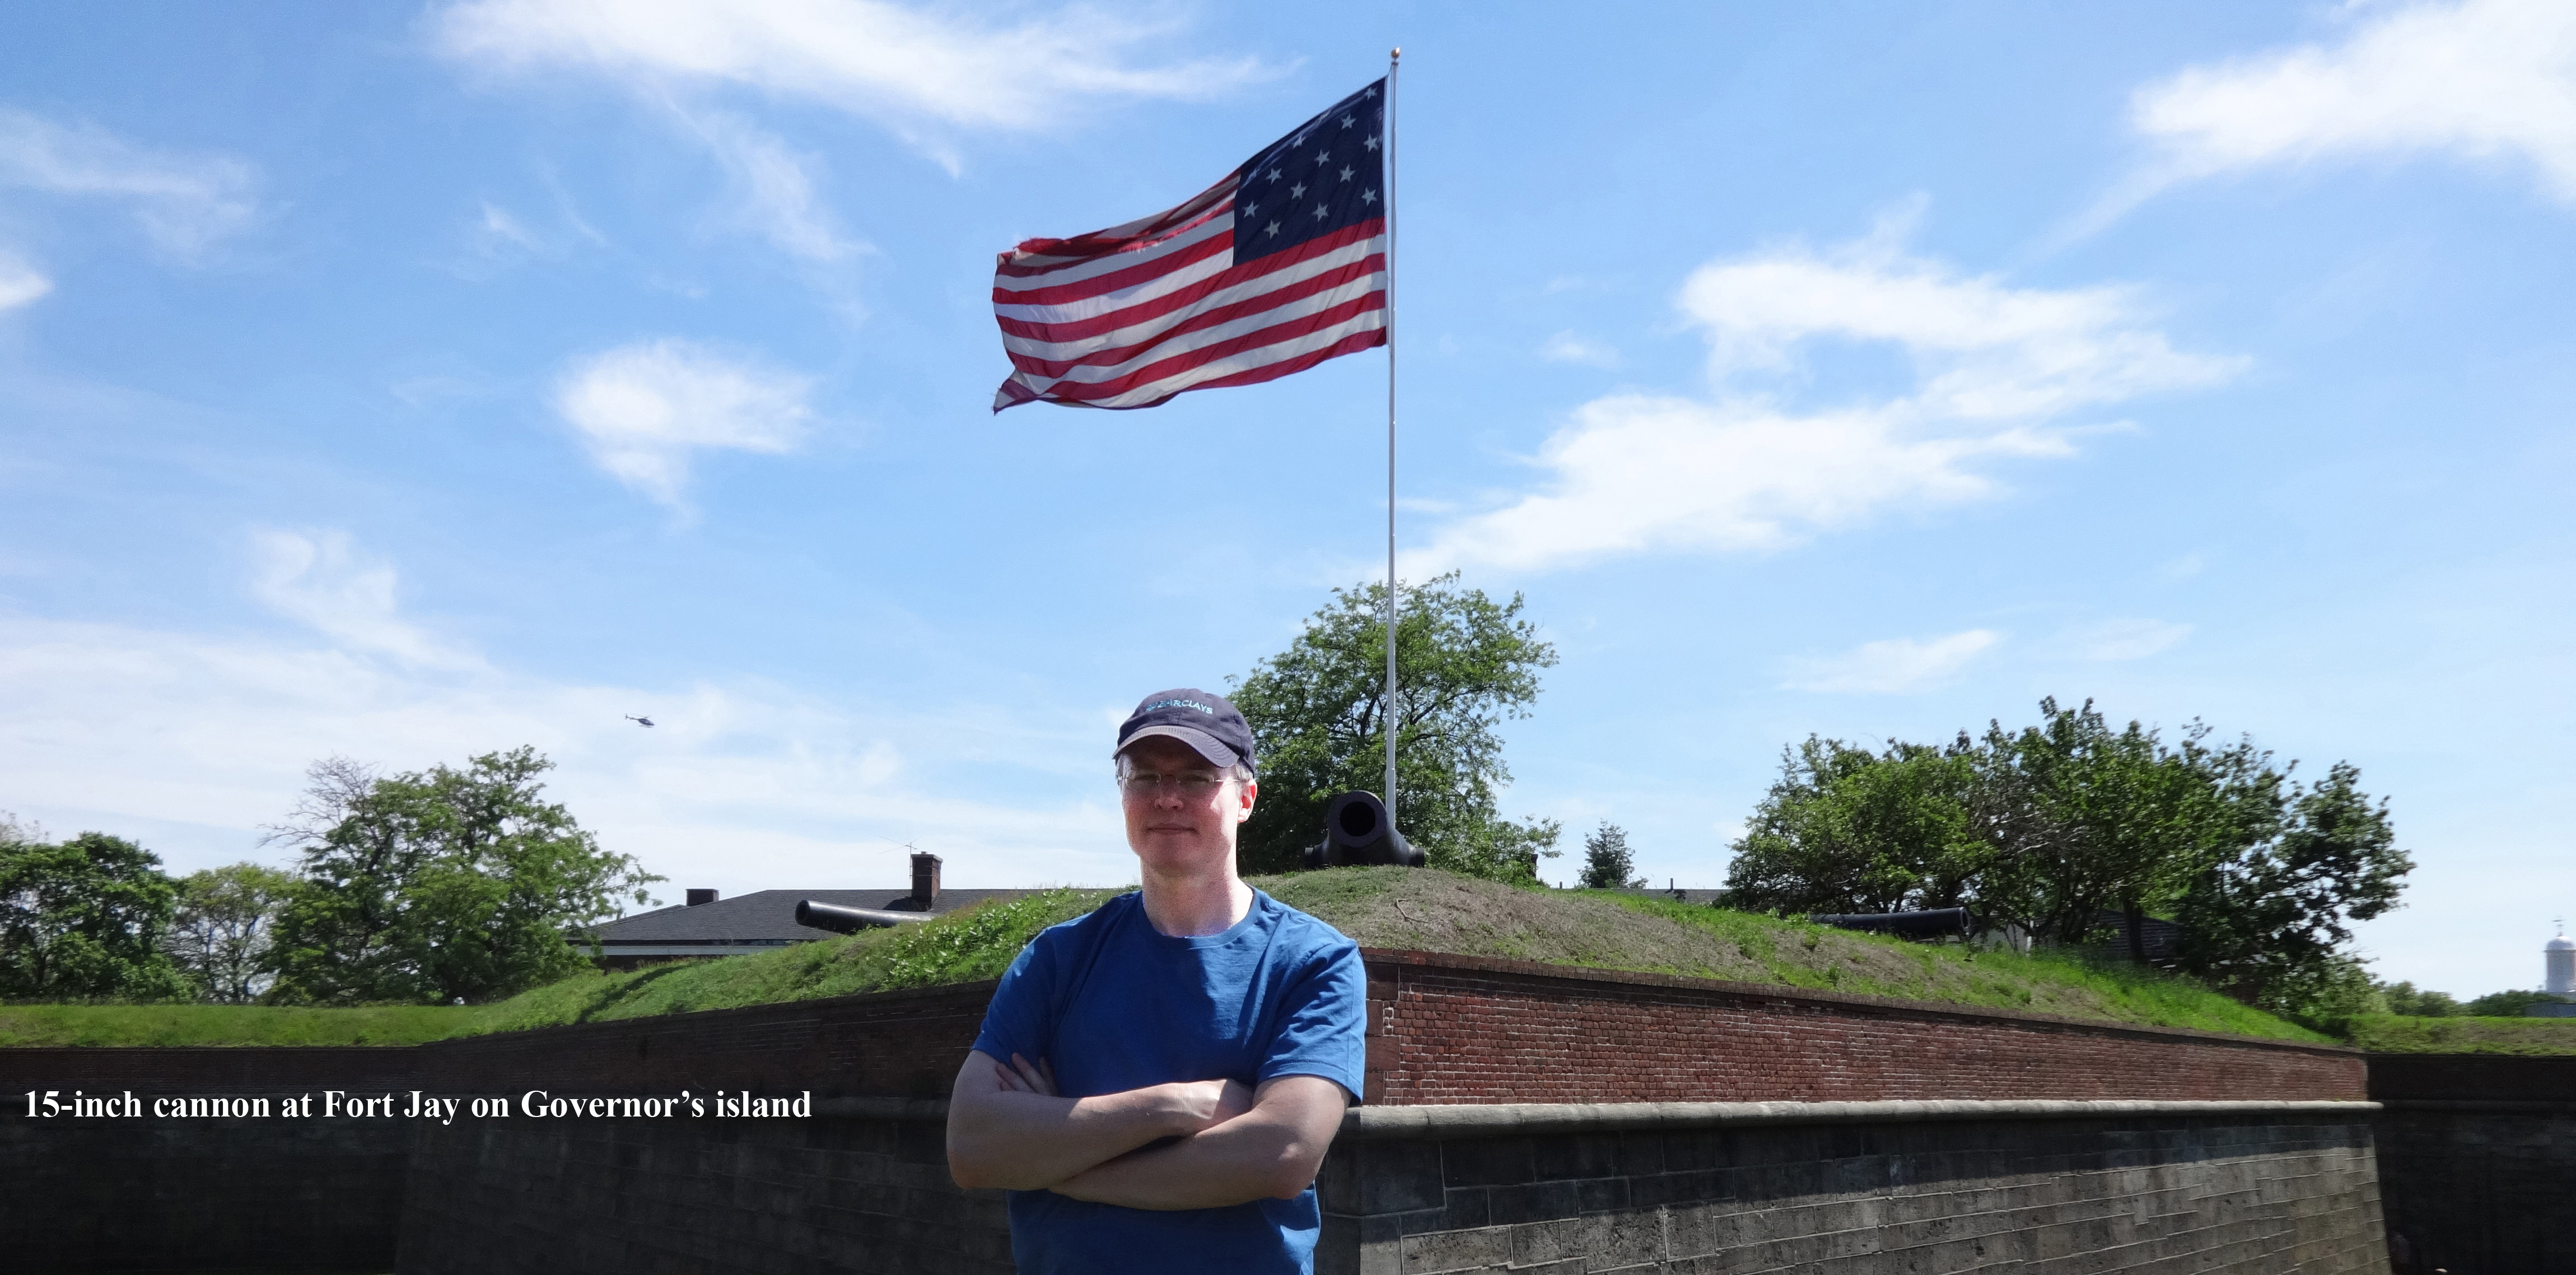 Patriotic Greer by cannon and flag Governors Island 2